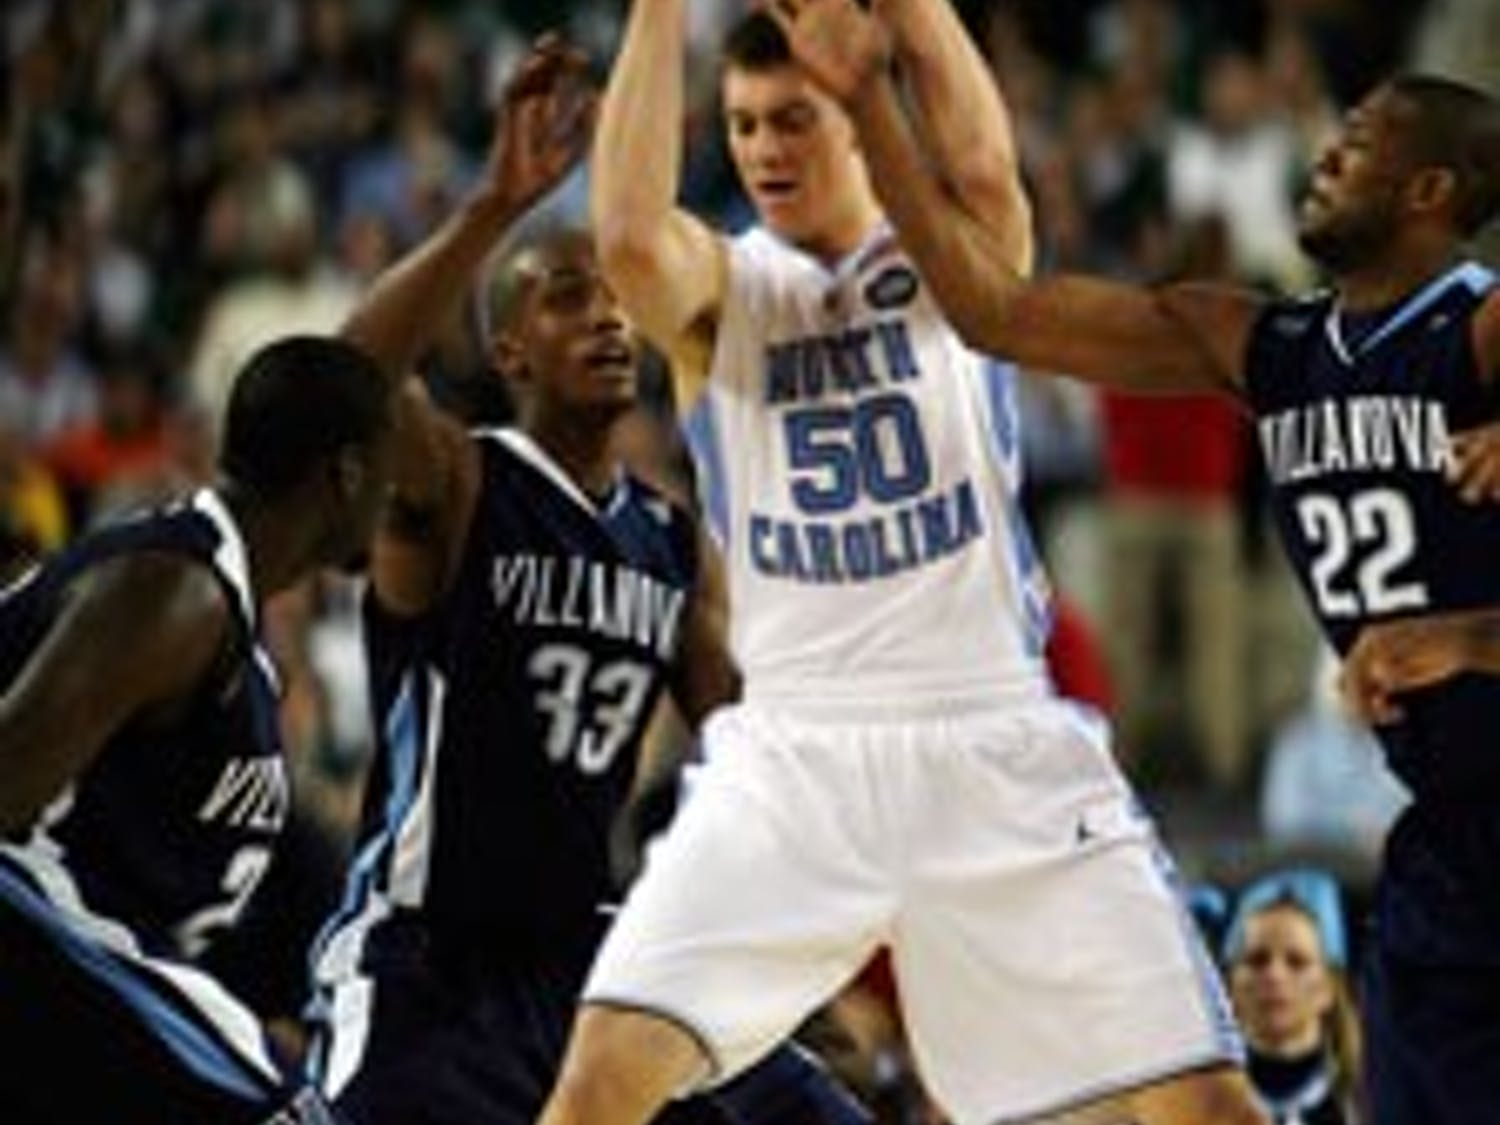 Tyler Hansbrough and the Tar Heels got off to a hot start in the first half Saturday against Villanova. The senior?s 18 points and 11 rebounds in the game led North Carolina in the post and put UNC in the national title matchup.